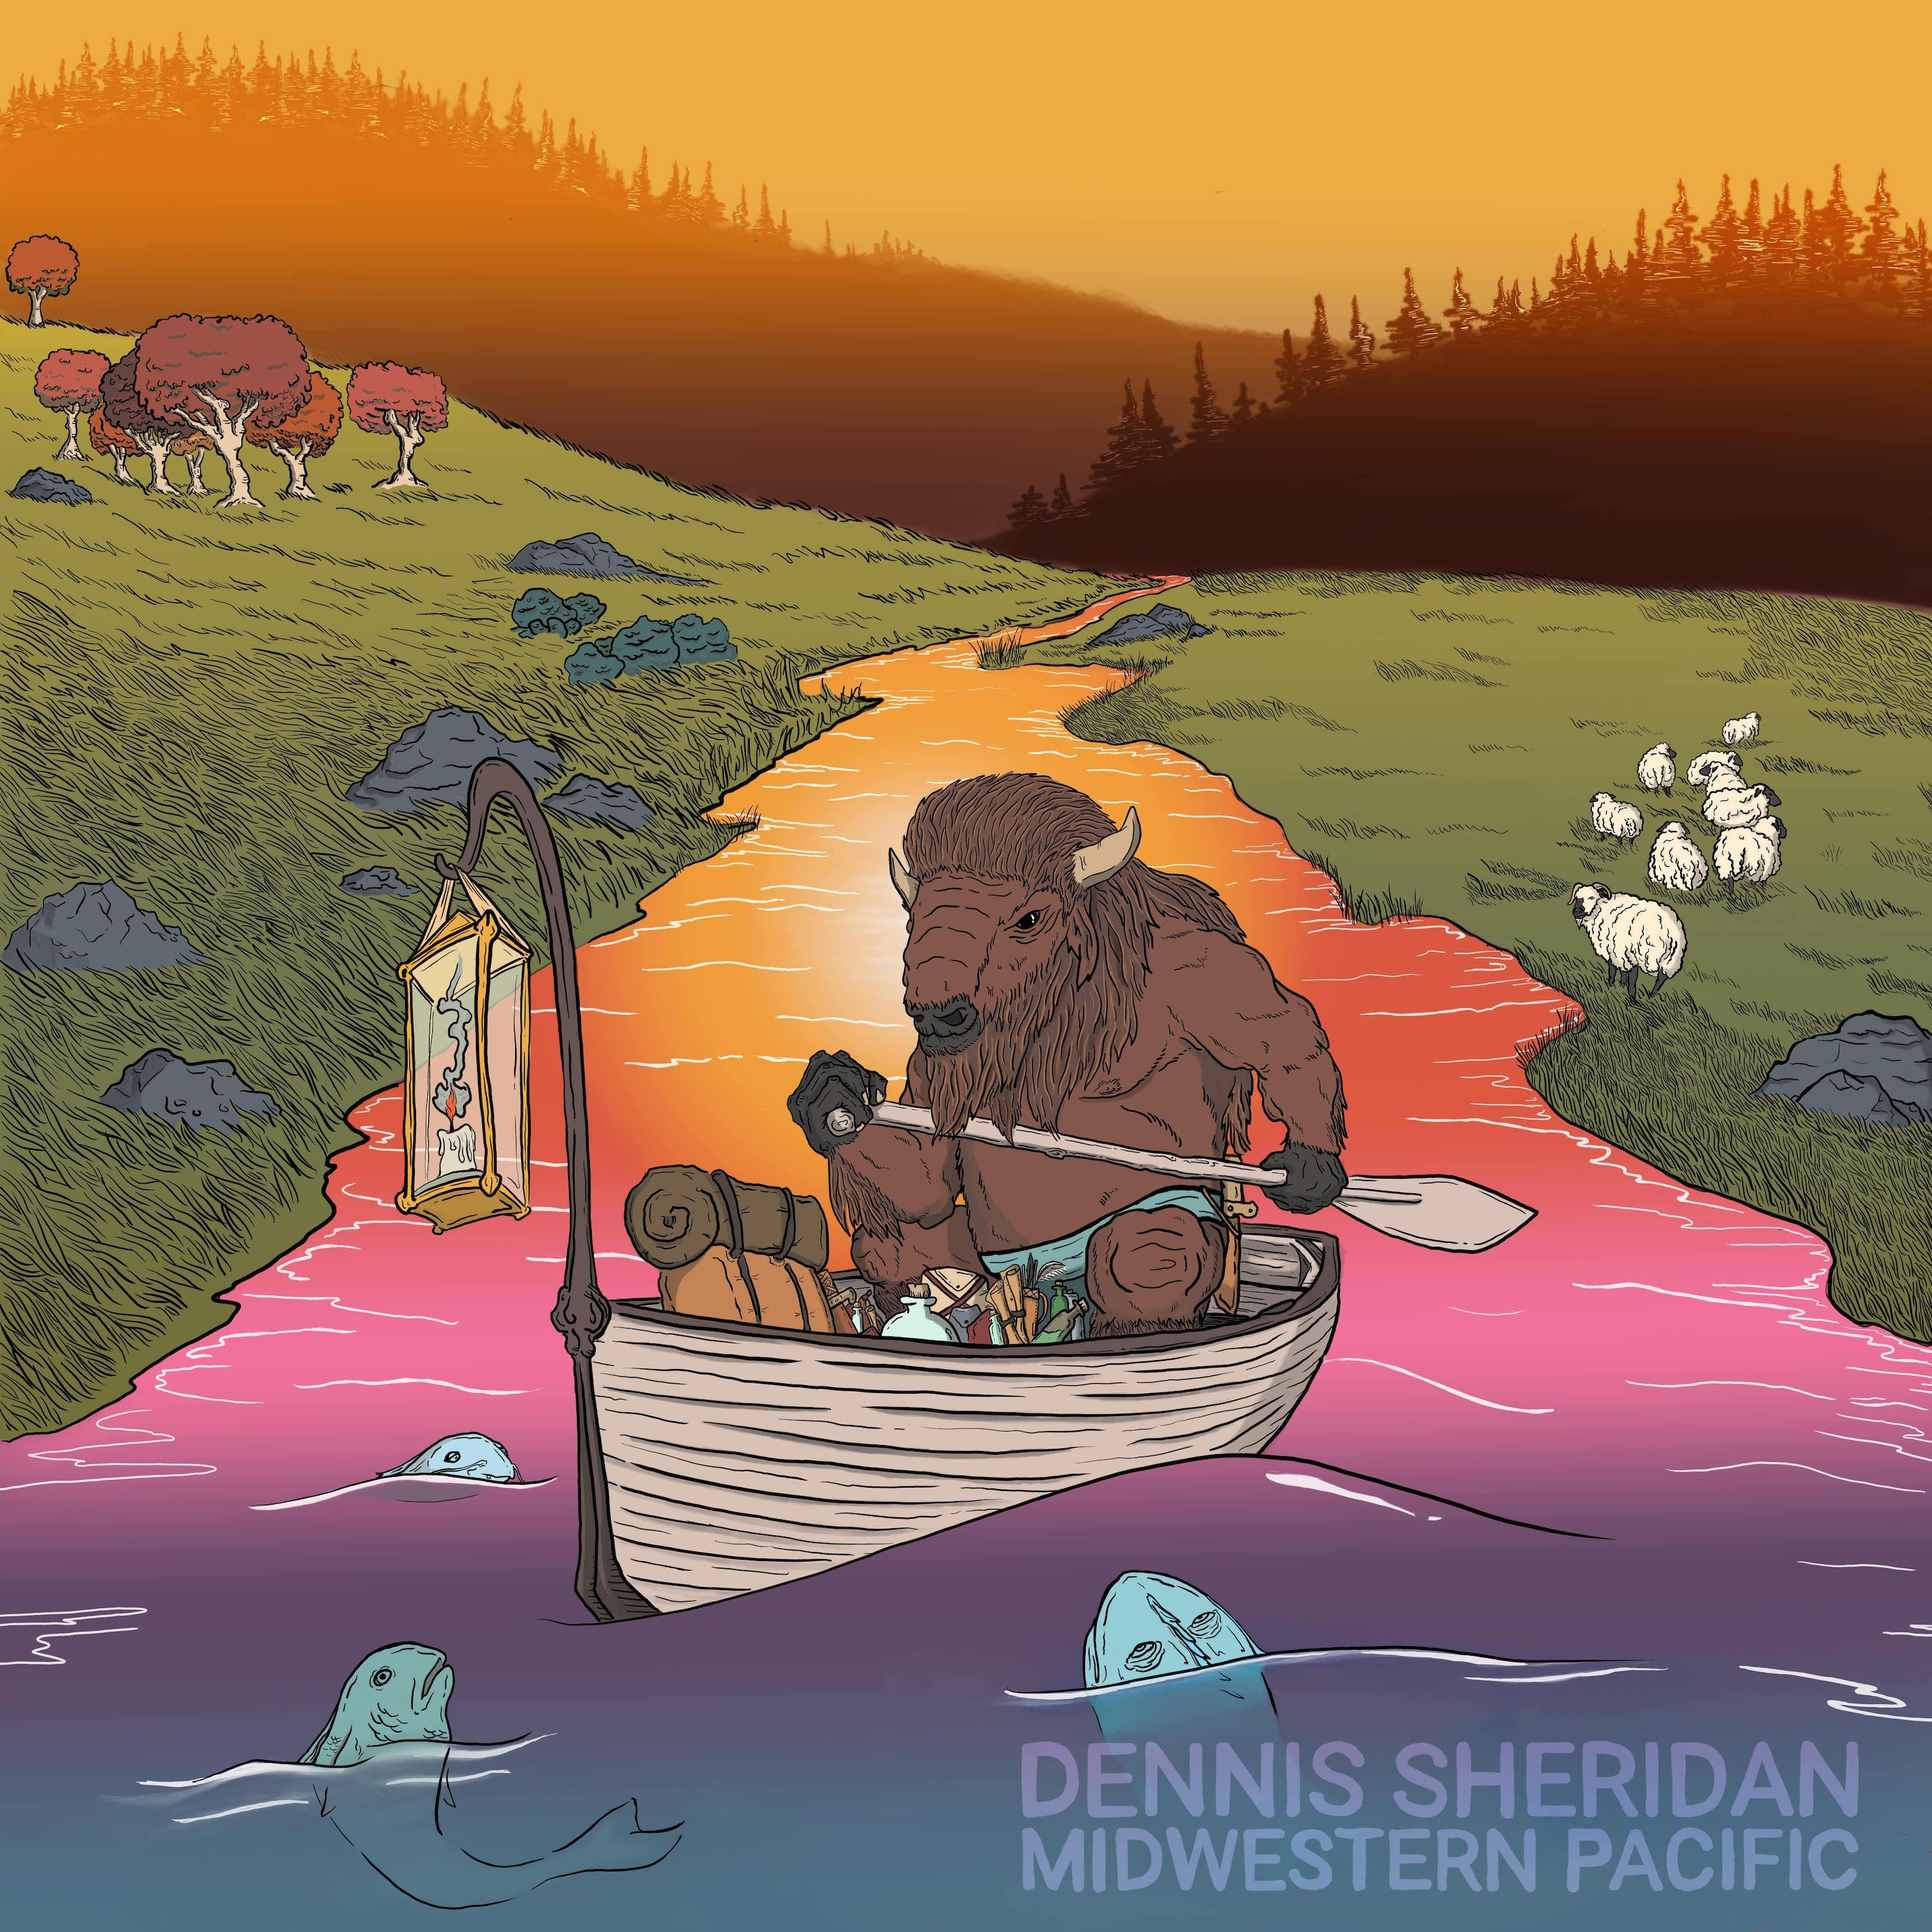 Dennis Sheridan - Midwestern Pacific